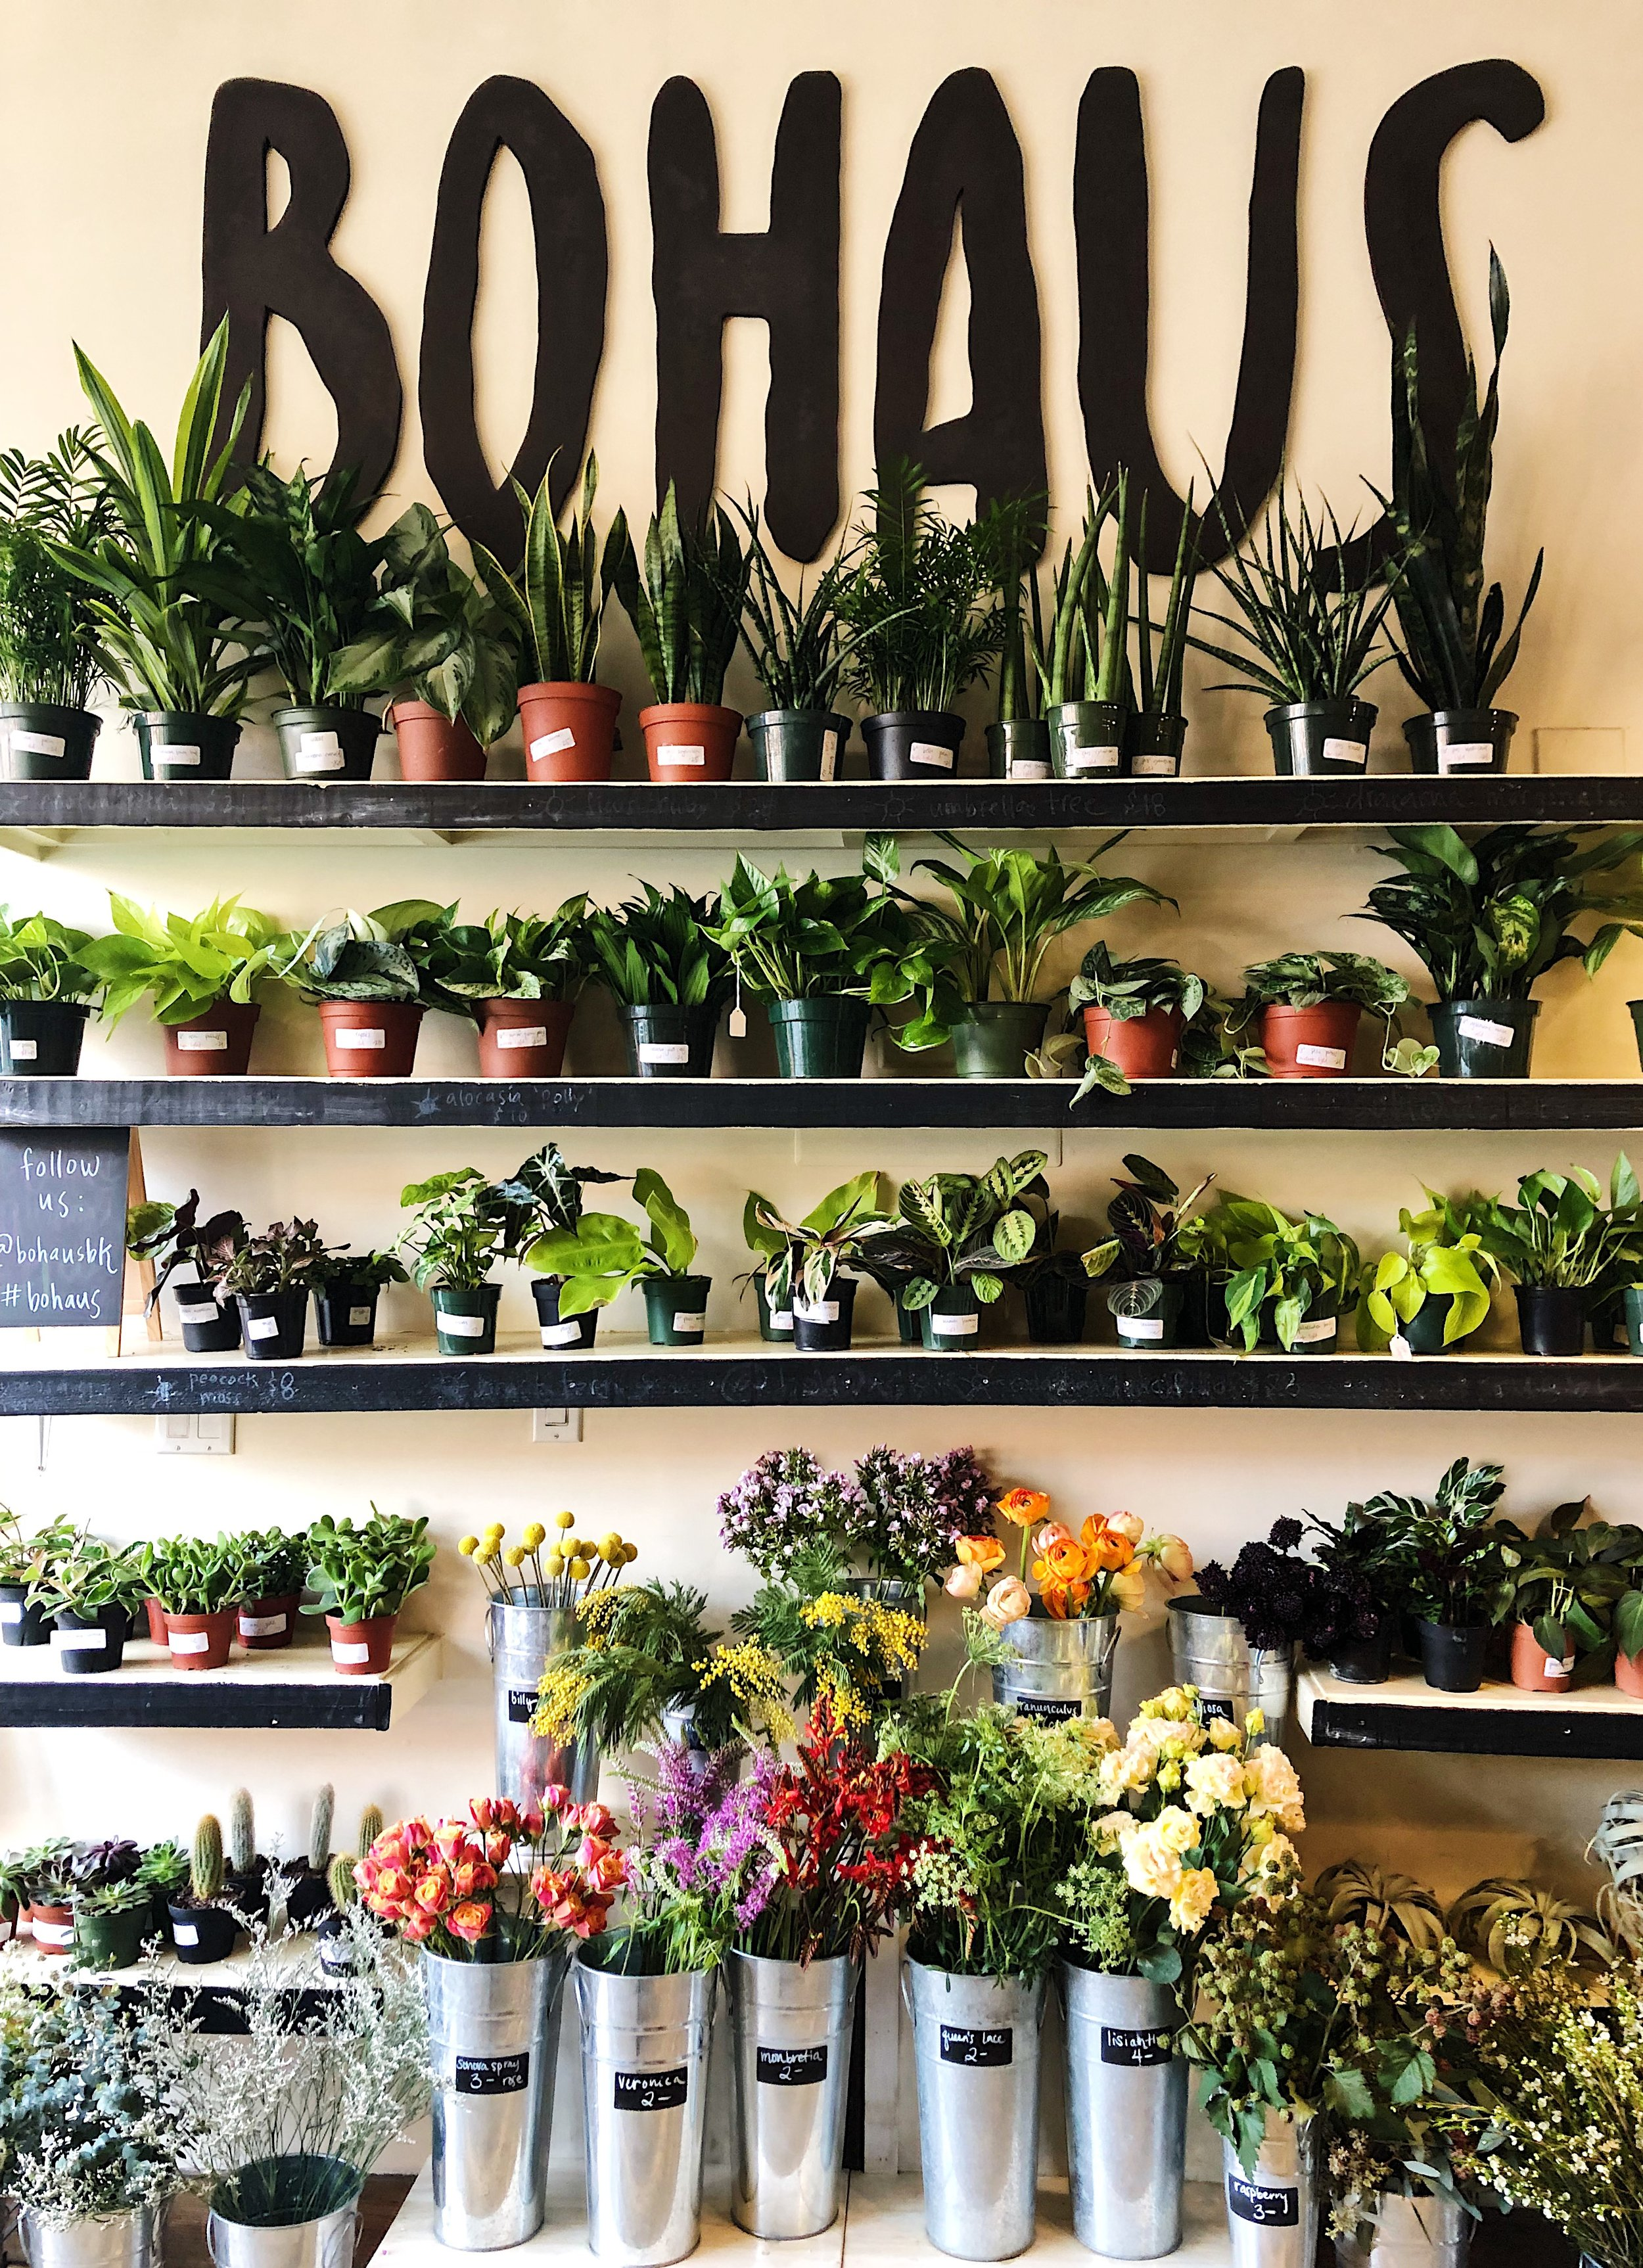 25 New York restaurants and coffee shops with plants